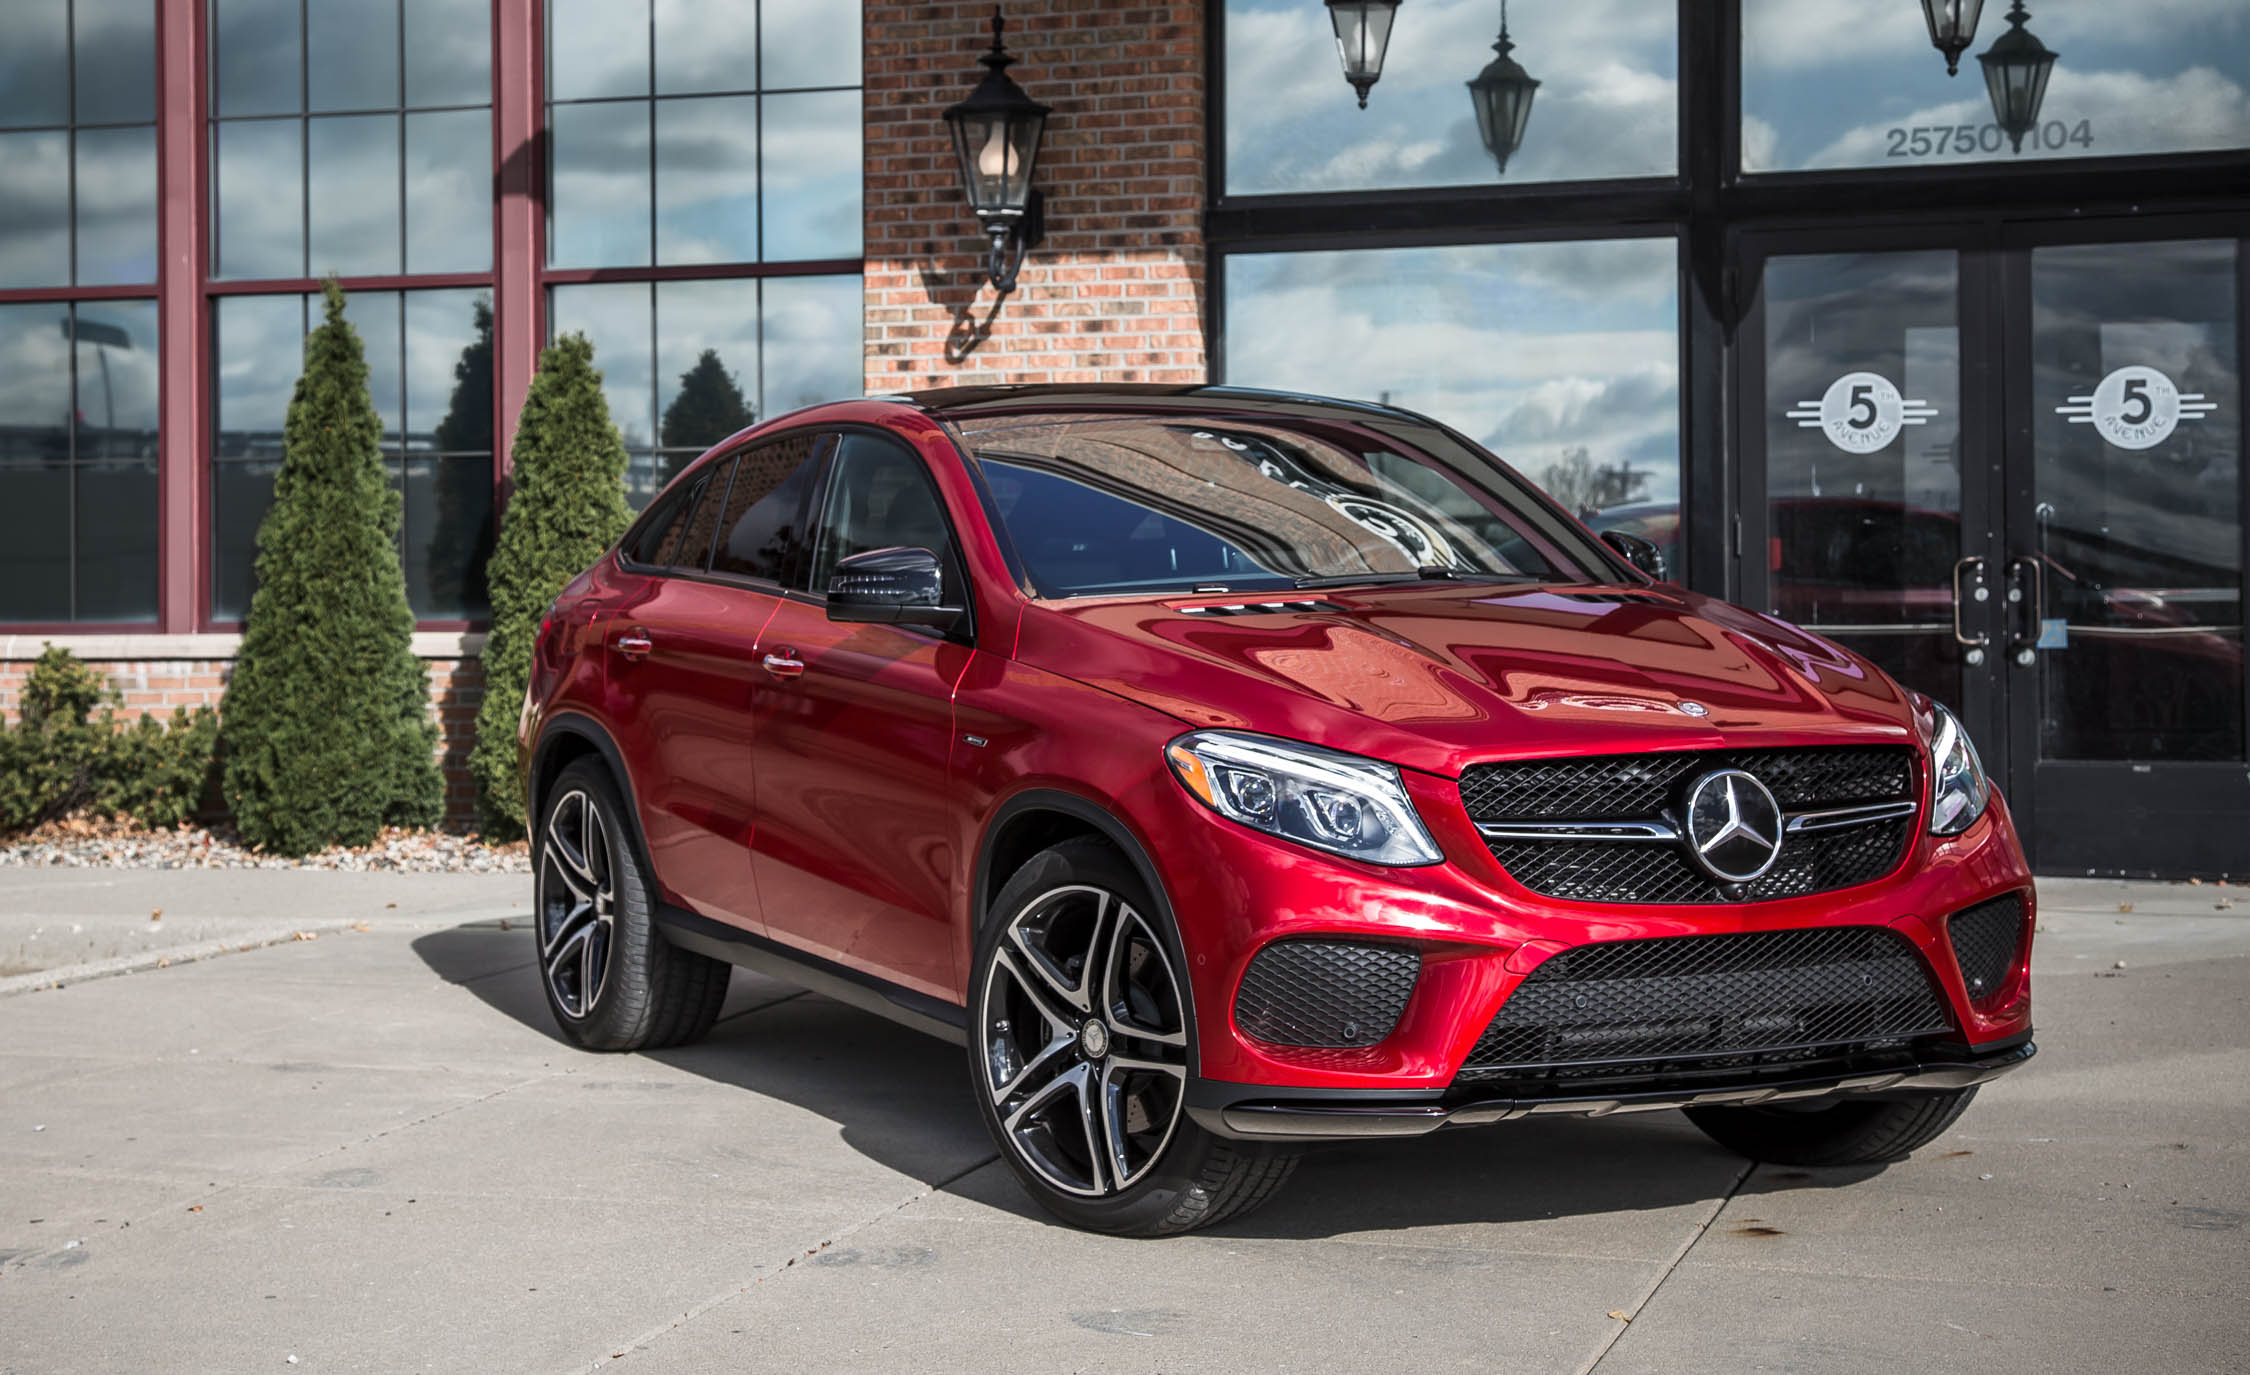 2016 Mercedes-Benz GLE450 AMG Coupe Exterior